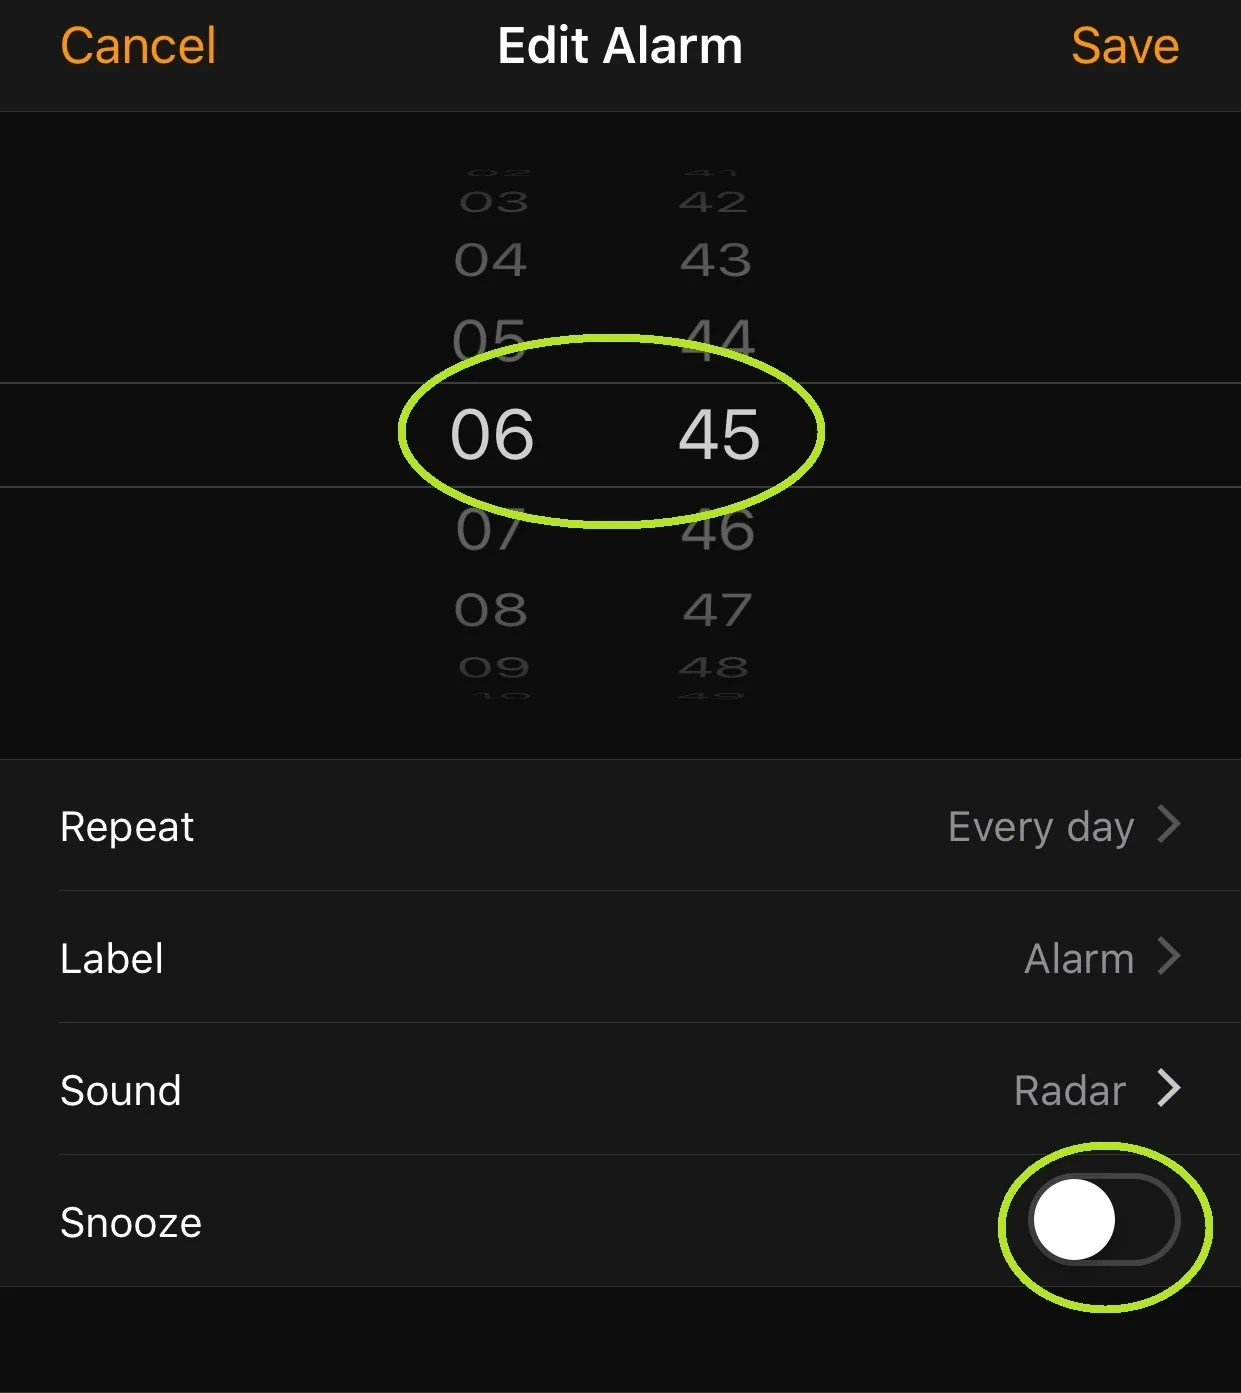 We don't need your snooze, Apple. We're creating our own.